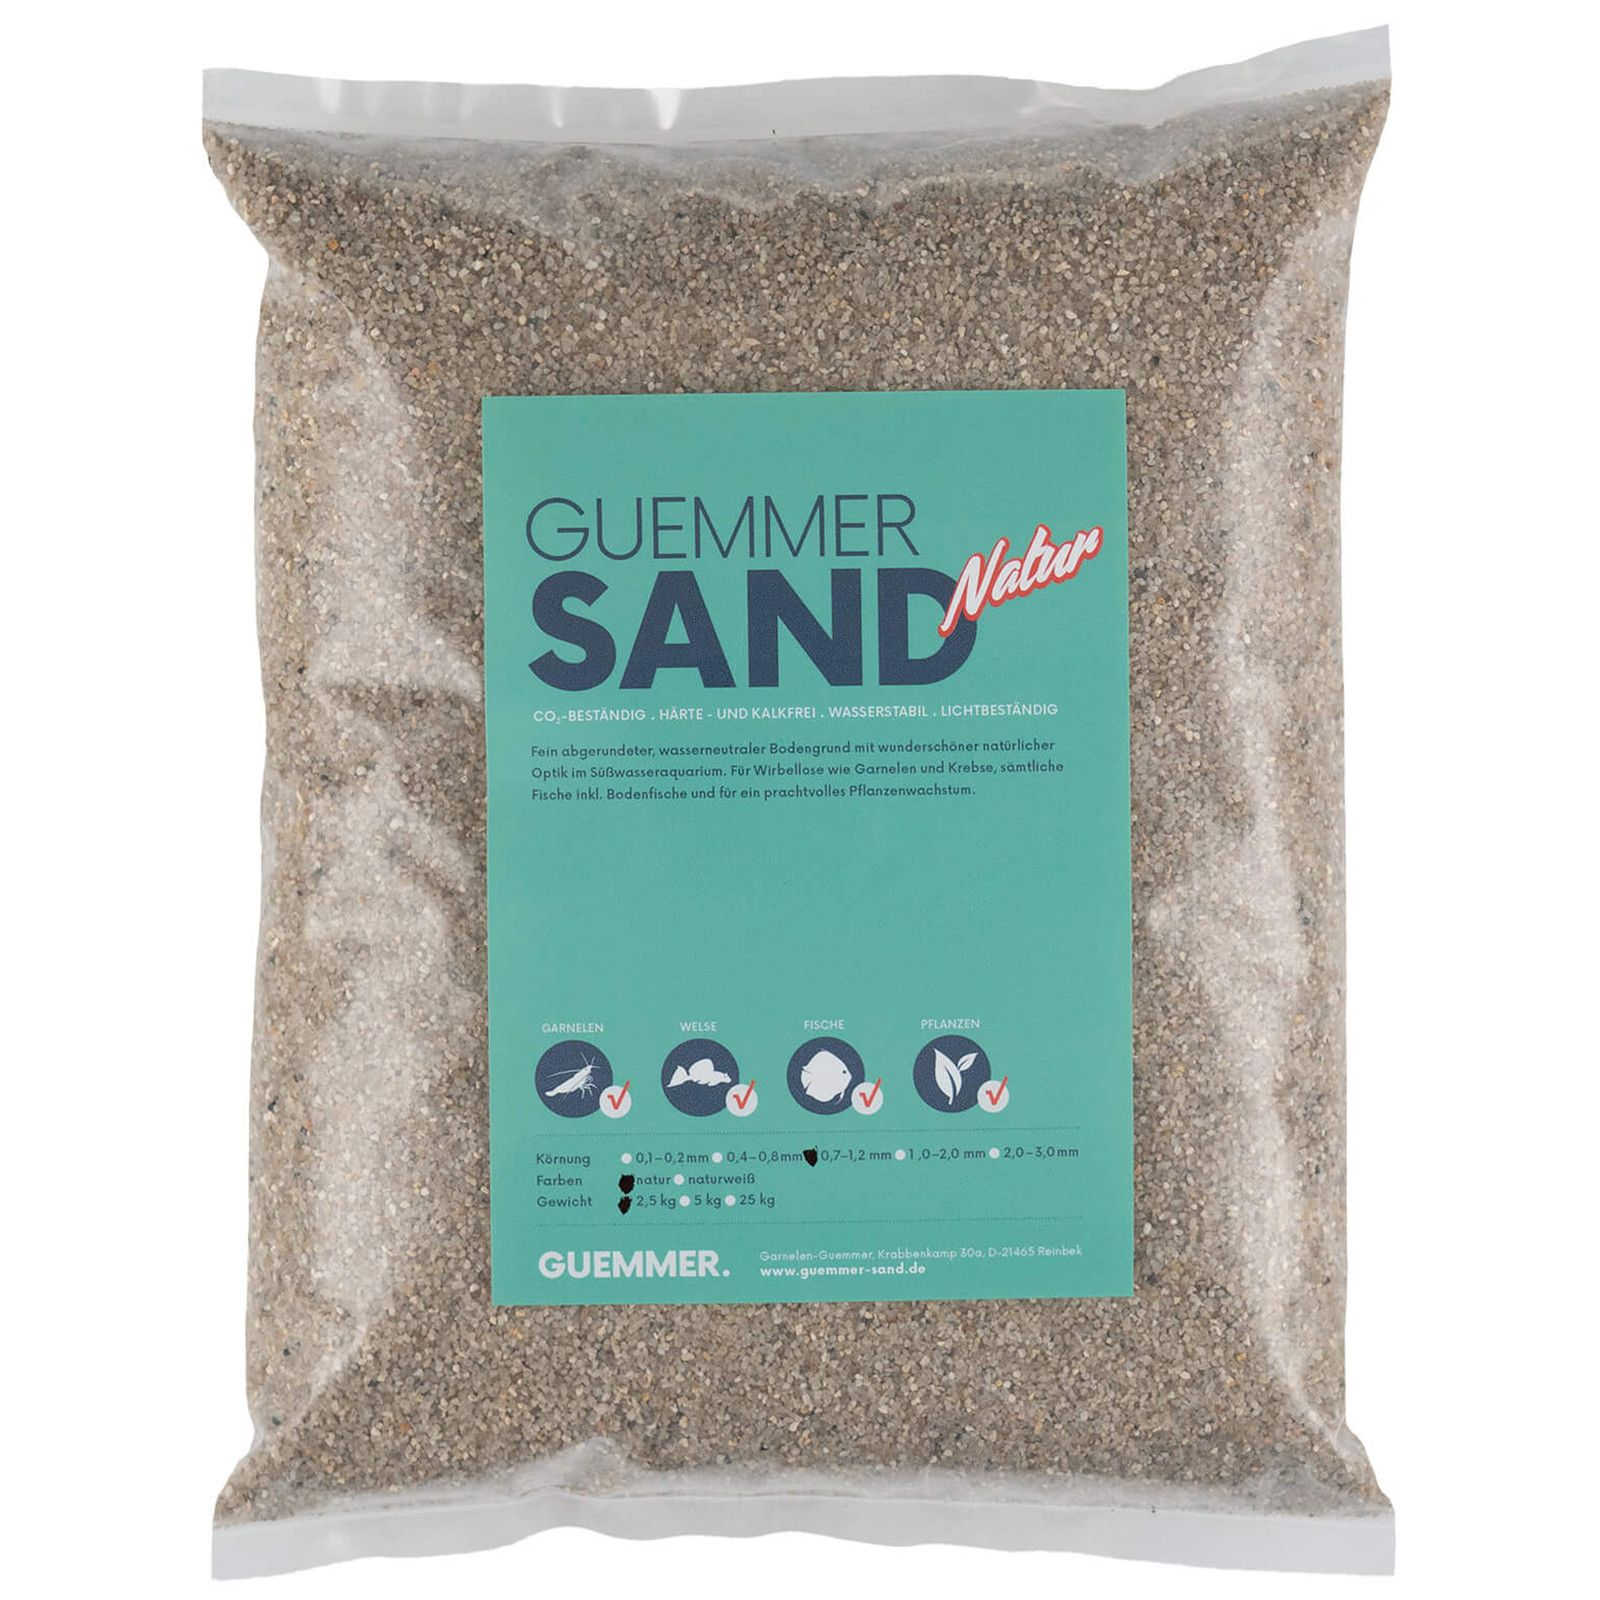 Guemmer Sand - nature - 0,7-1,2 mm